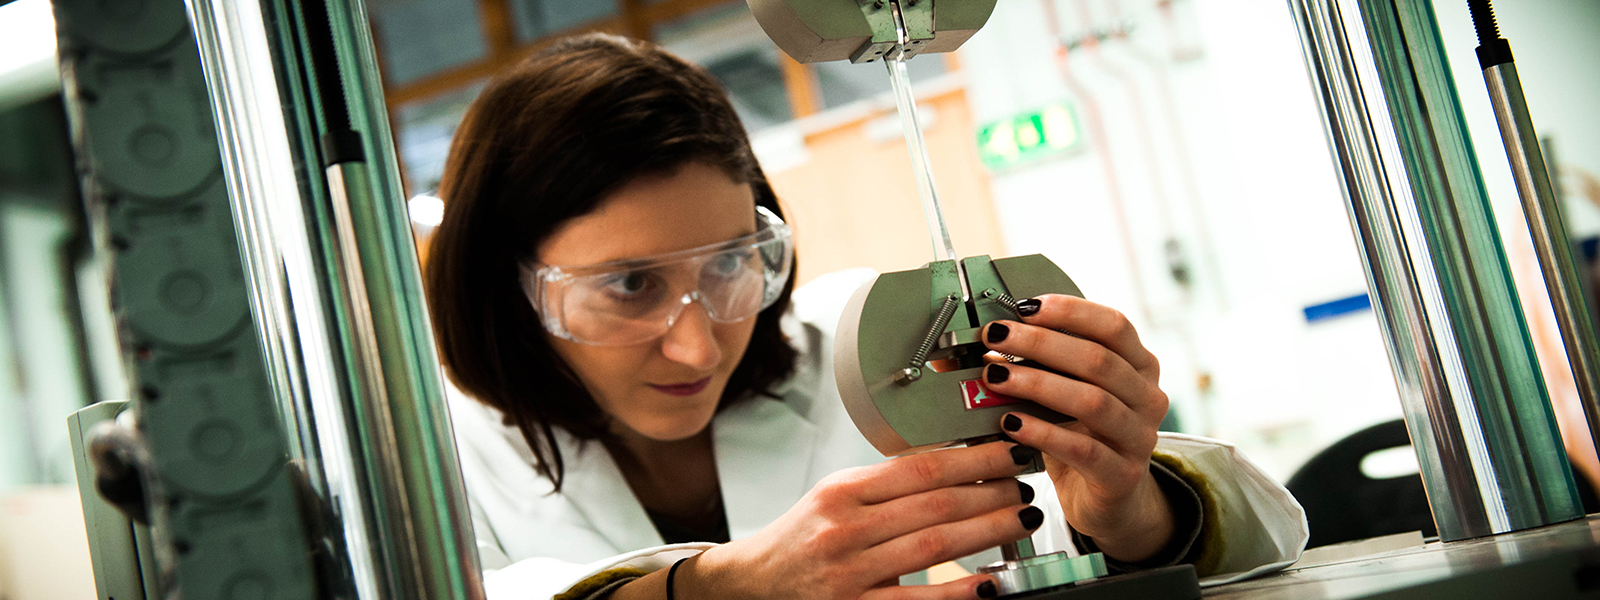 a female engineer works in a lab